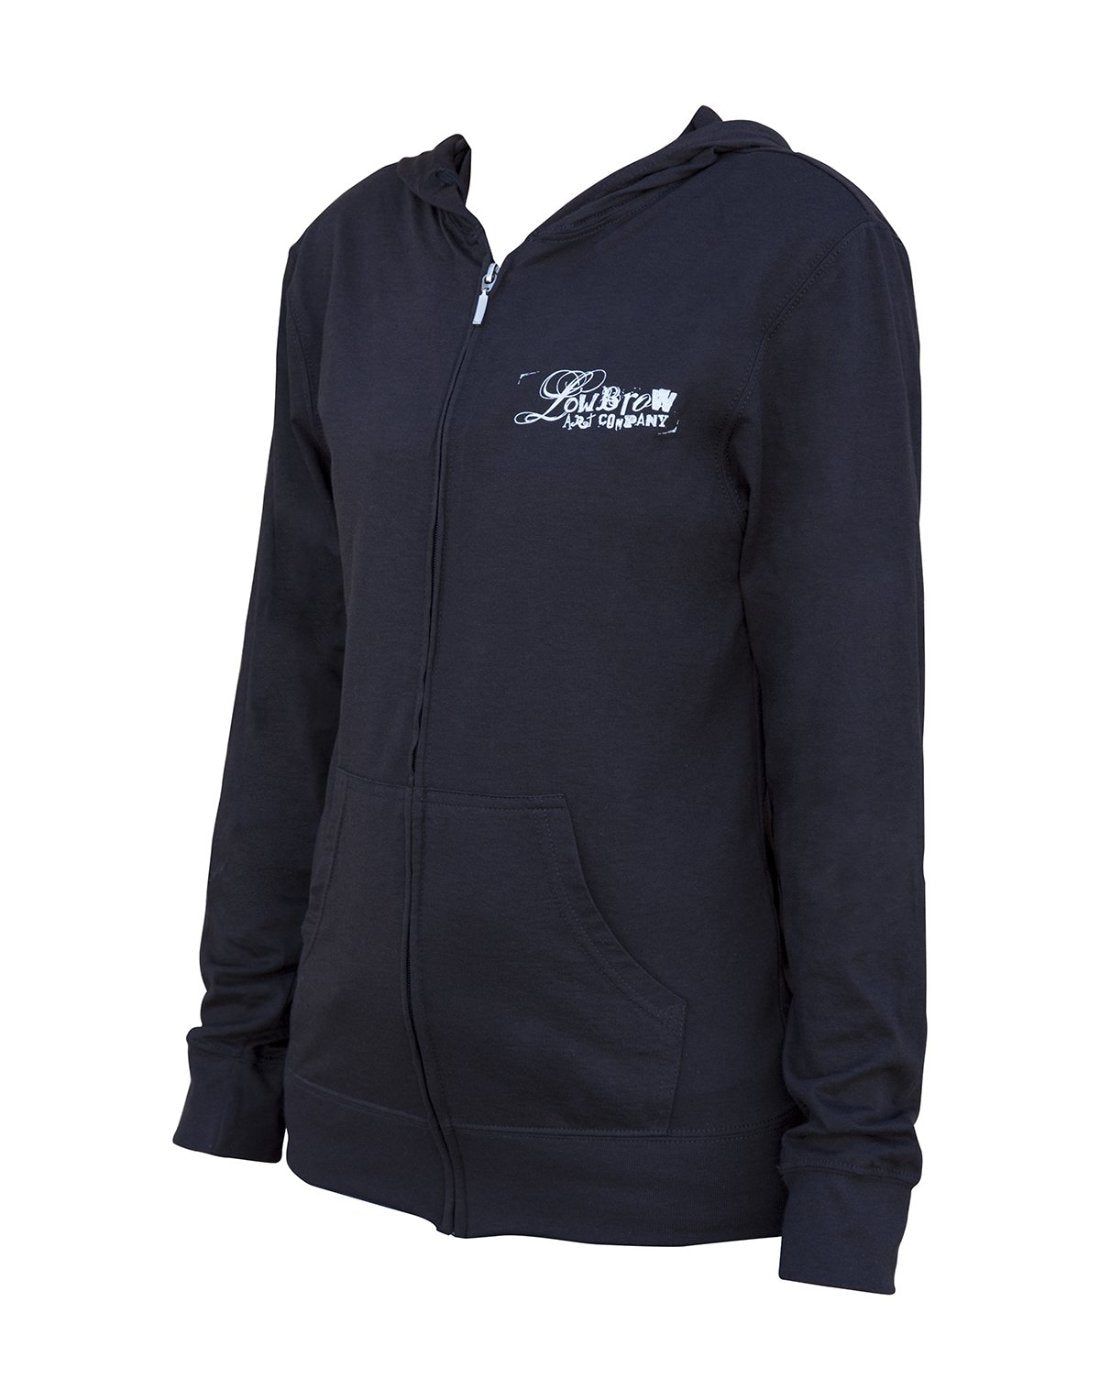 The SPIDER GIRL Women's Full Zip Fleece Hoodie